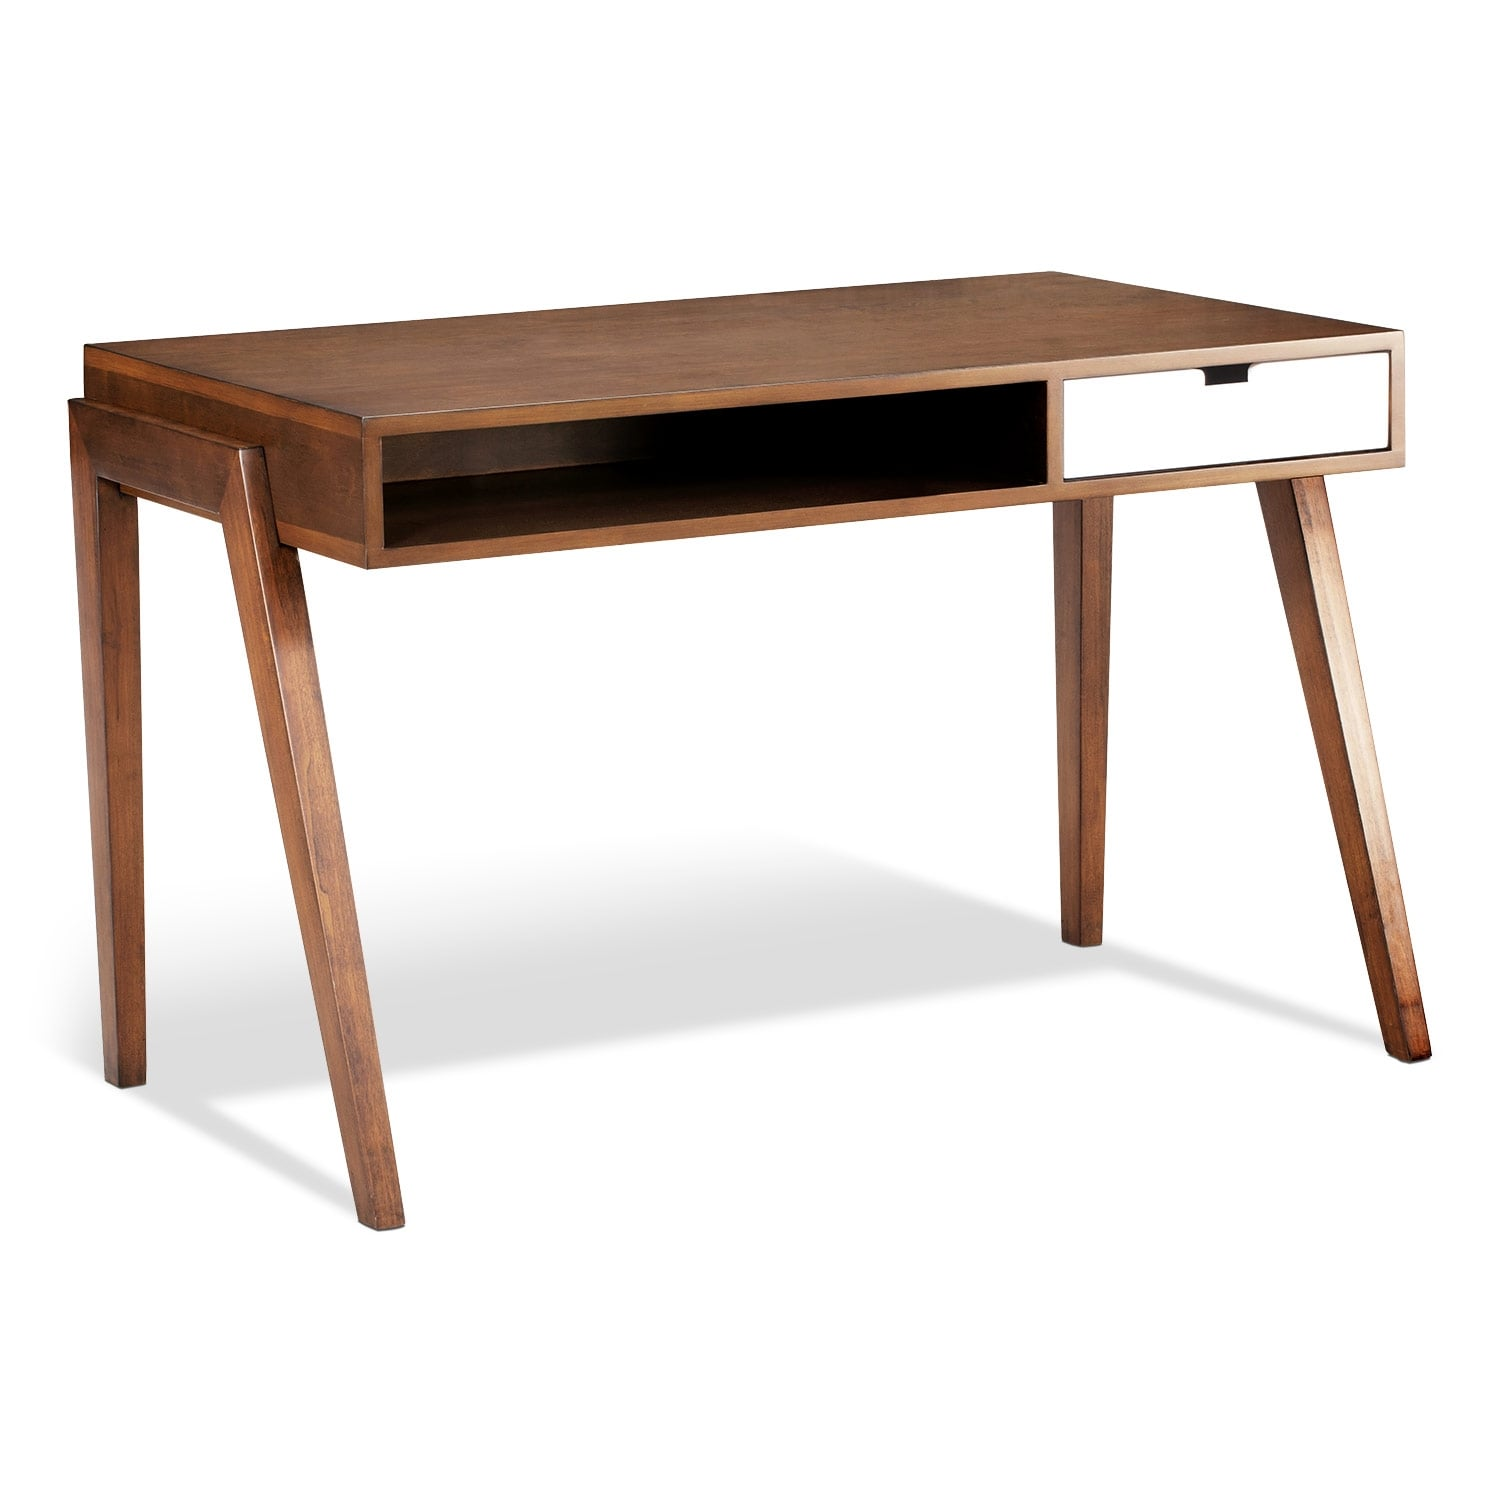 Home Office Furniture - Bradford Desk - Walnut